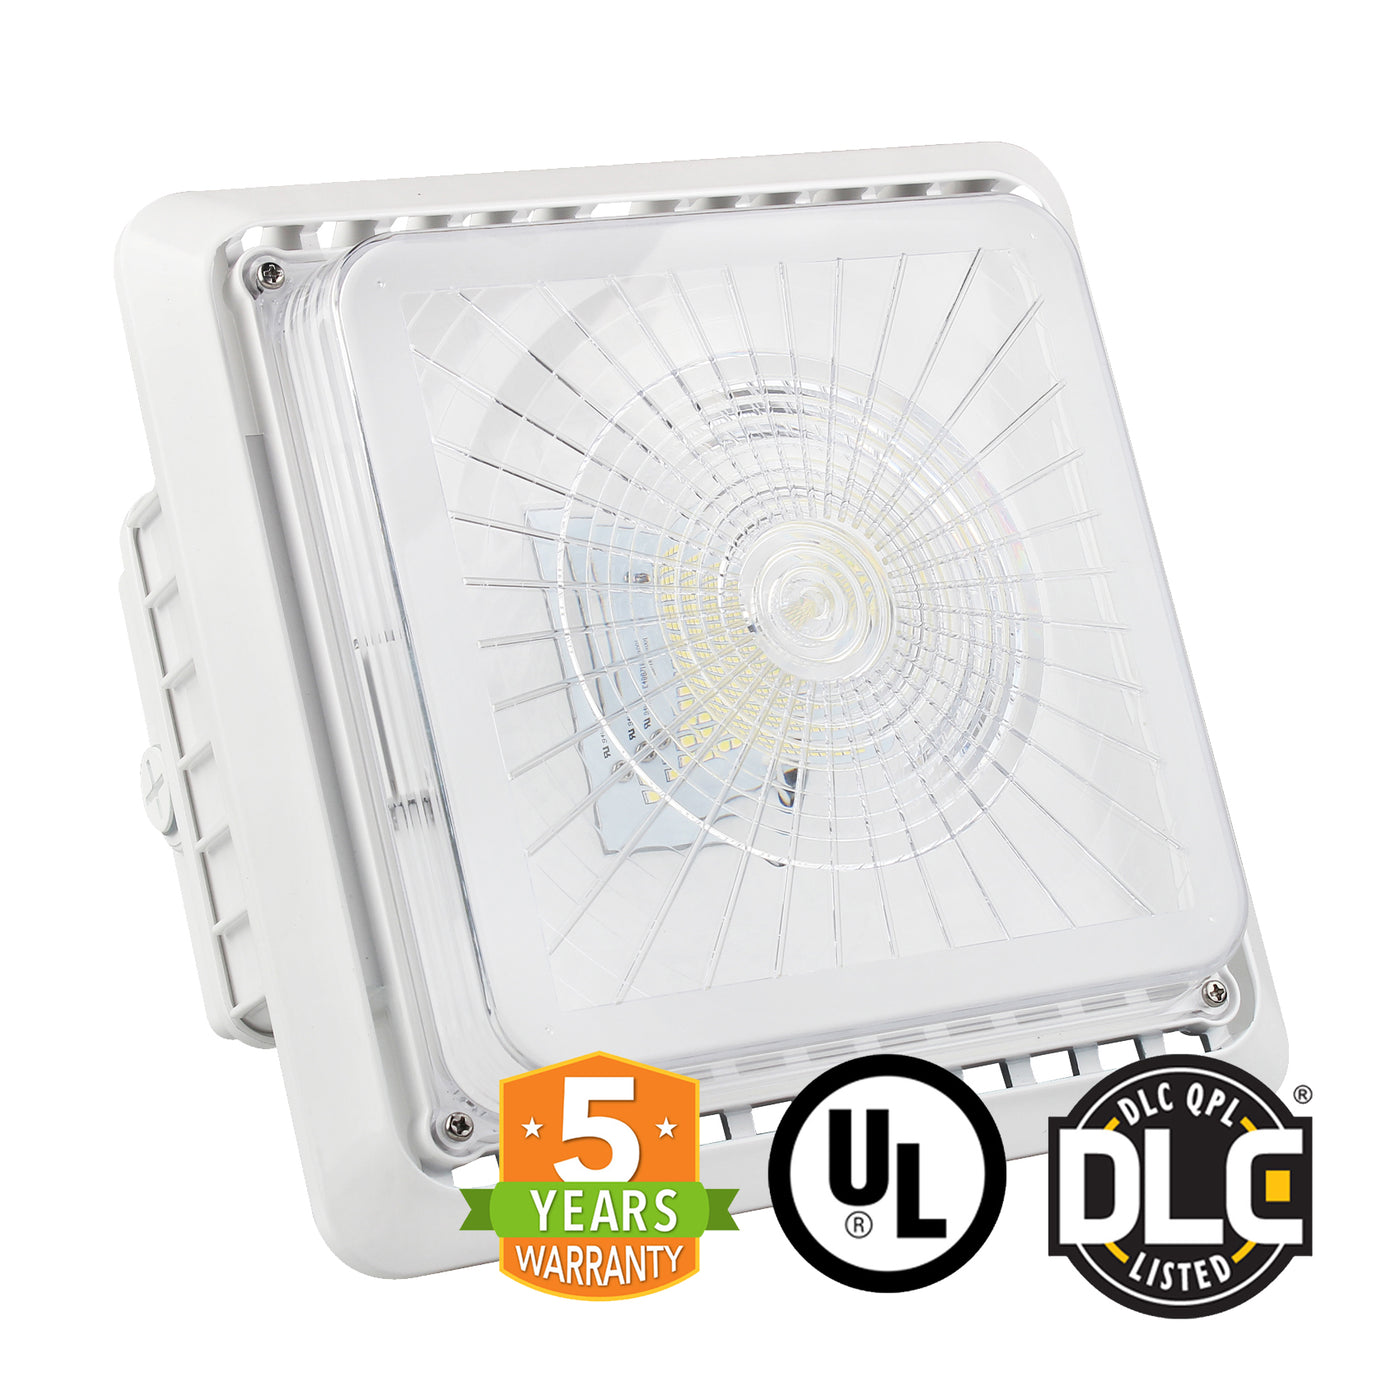 Canopy And Parking Garage Lights Led Outdoor Lighting: Parking Garage Canopy Lights For Sale